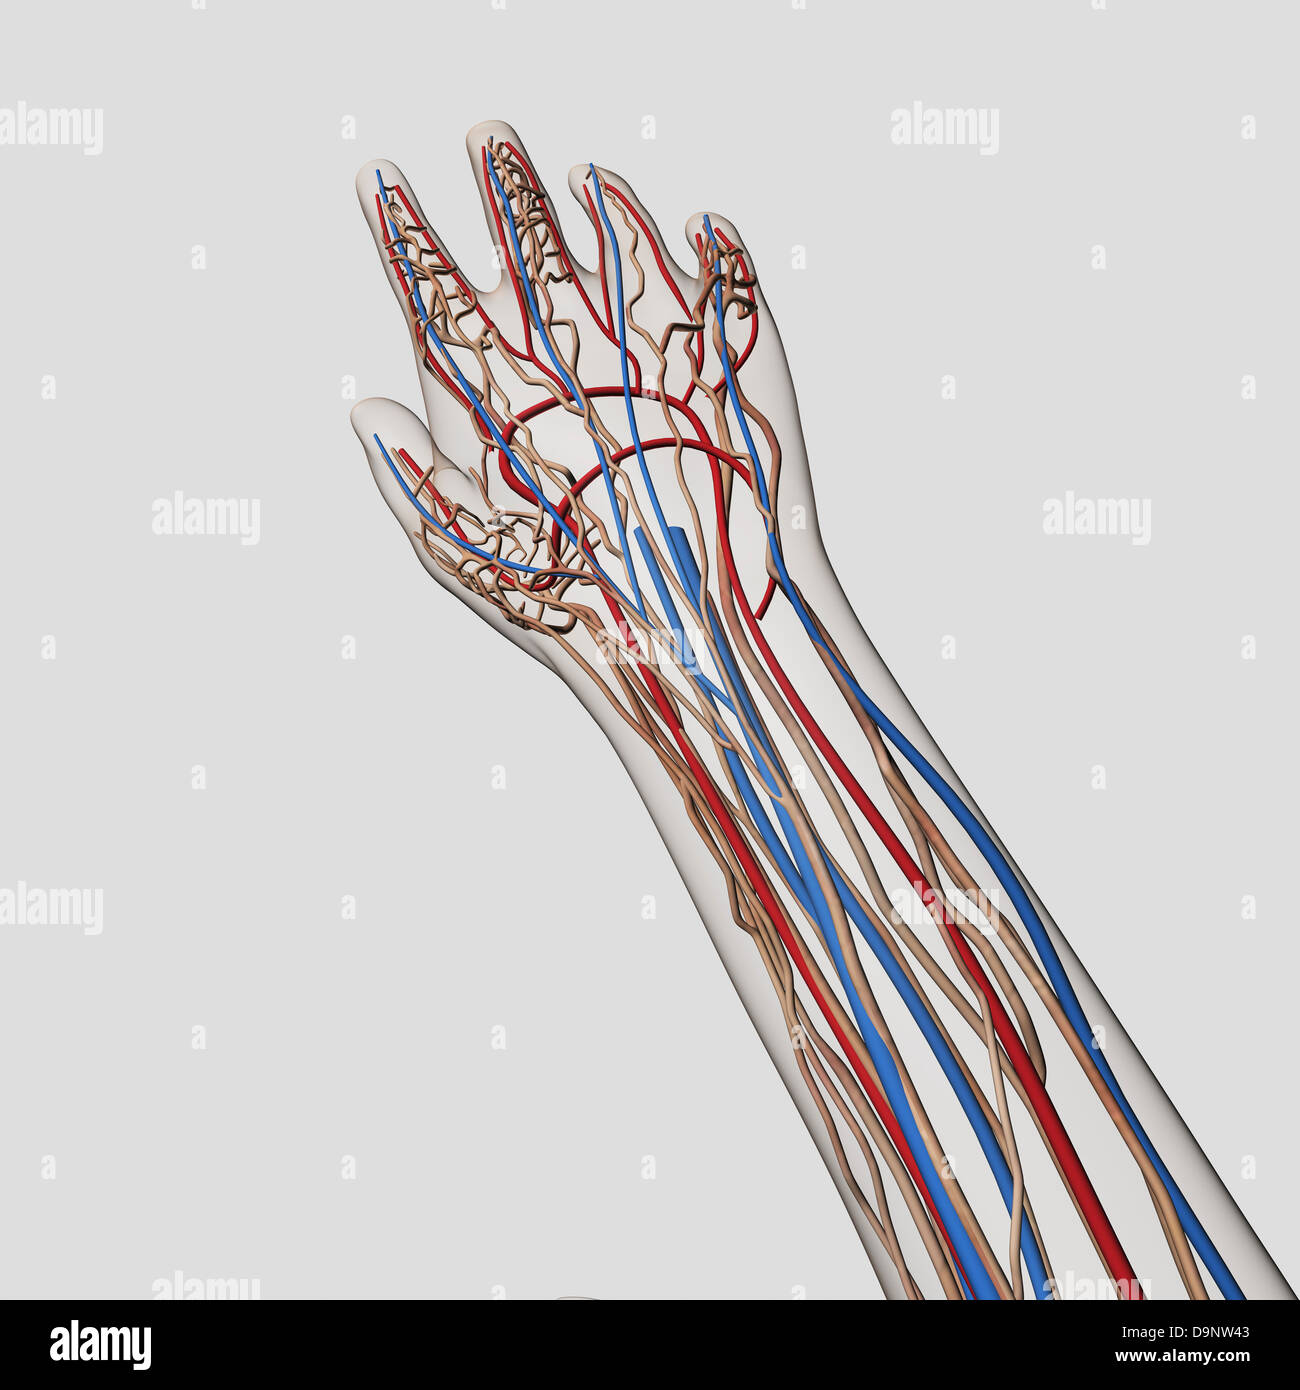 hight resolution of medical illustration of arteries veins and lymphatic system in human hand and arm